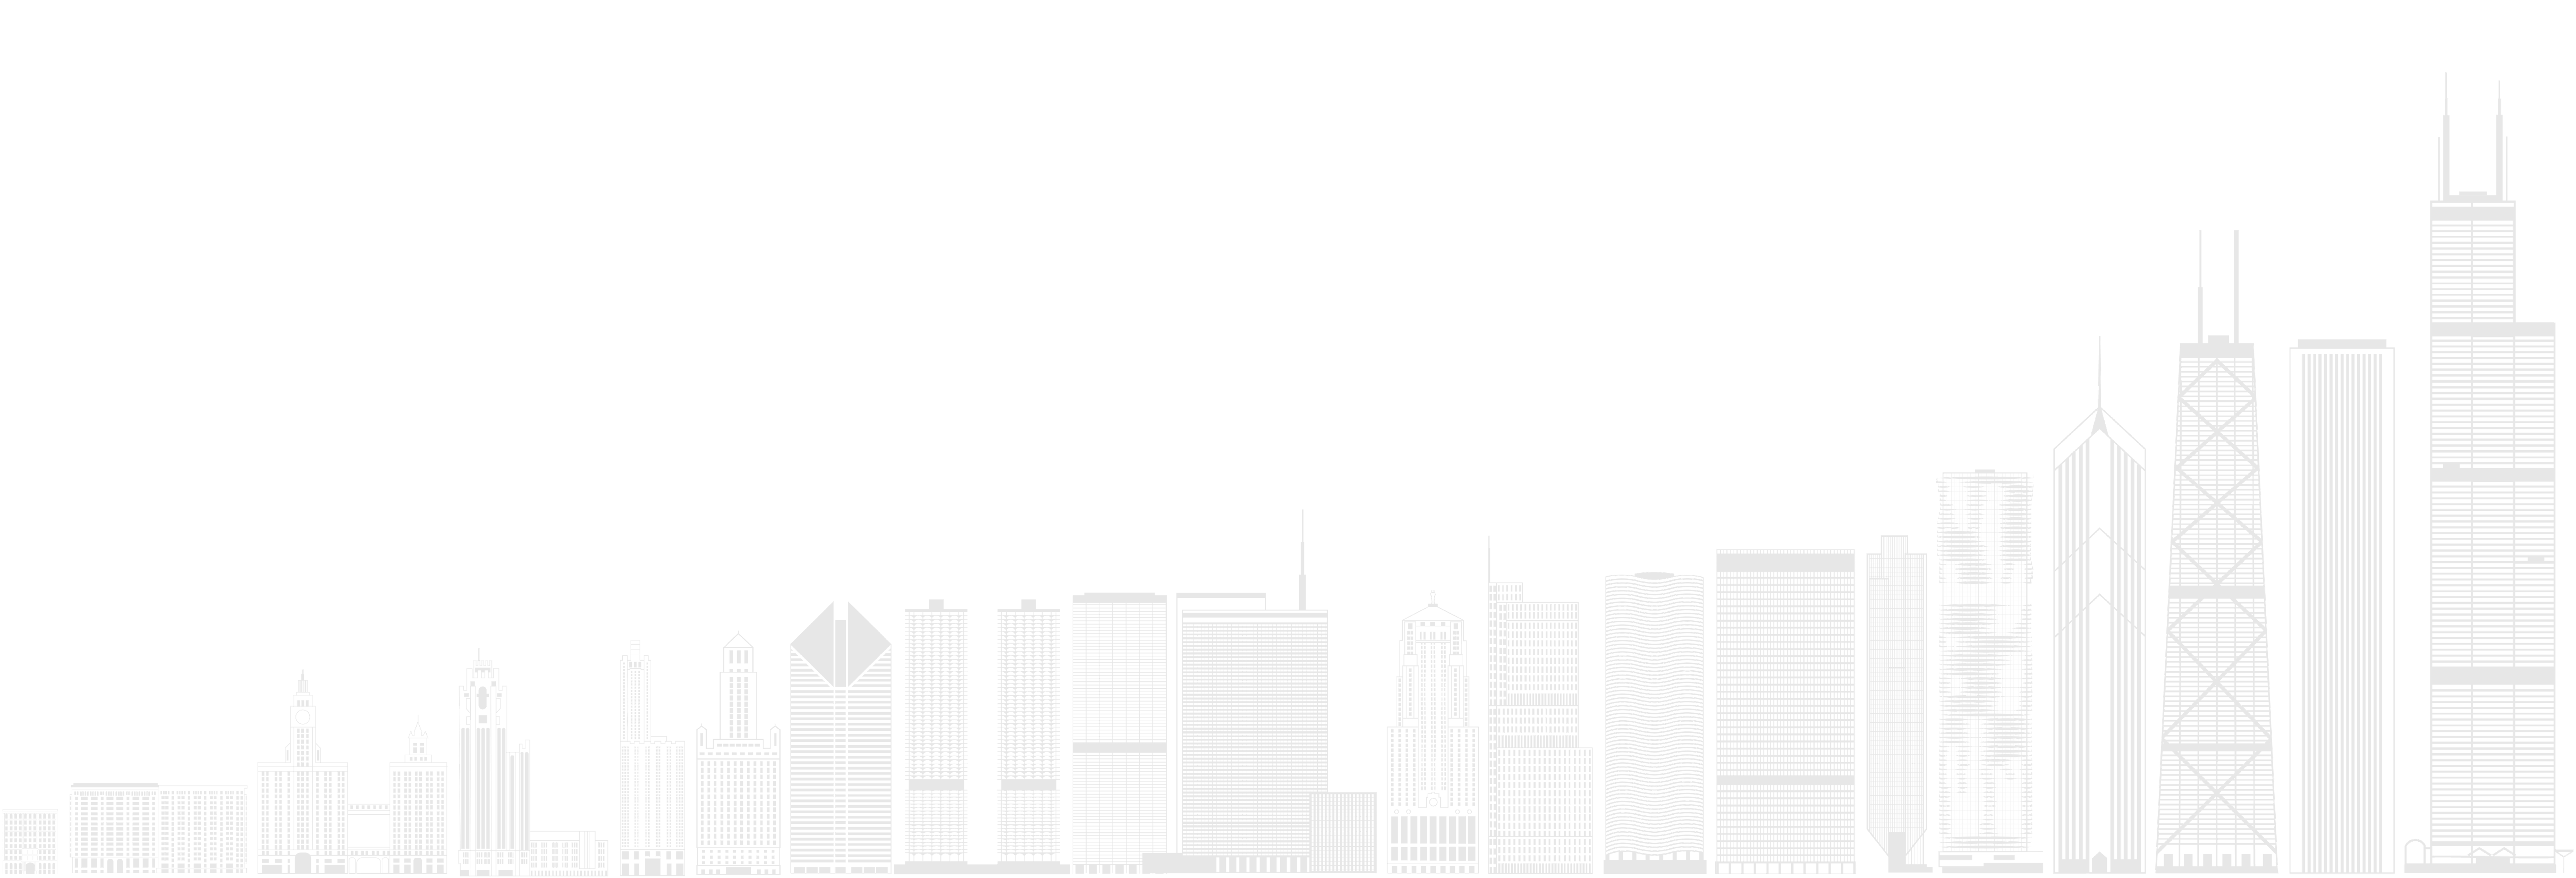 Skyscraper clipart architecture building. Travel through history with